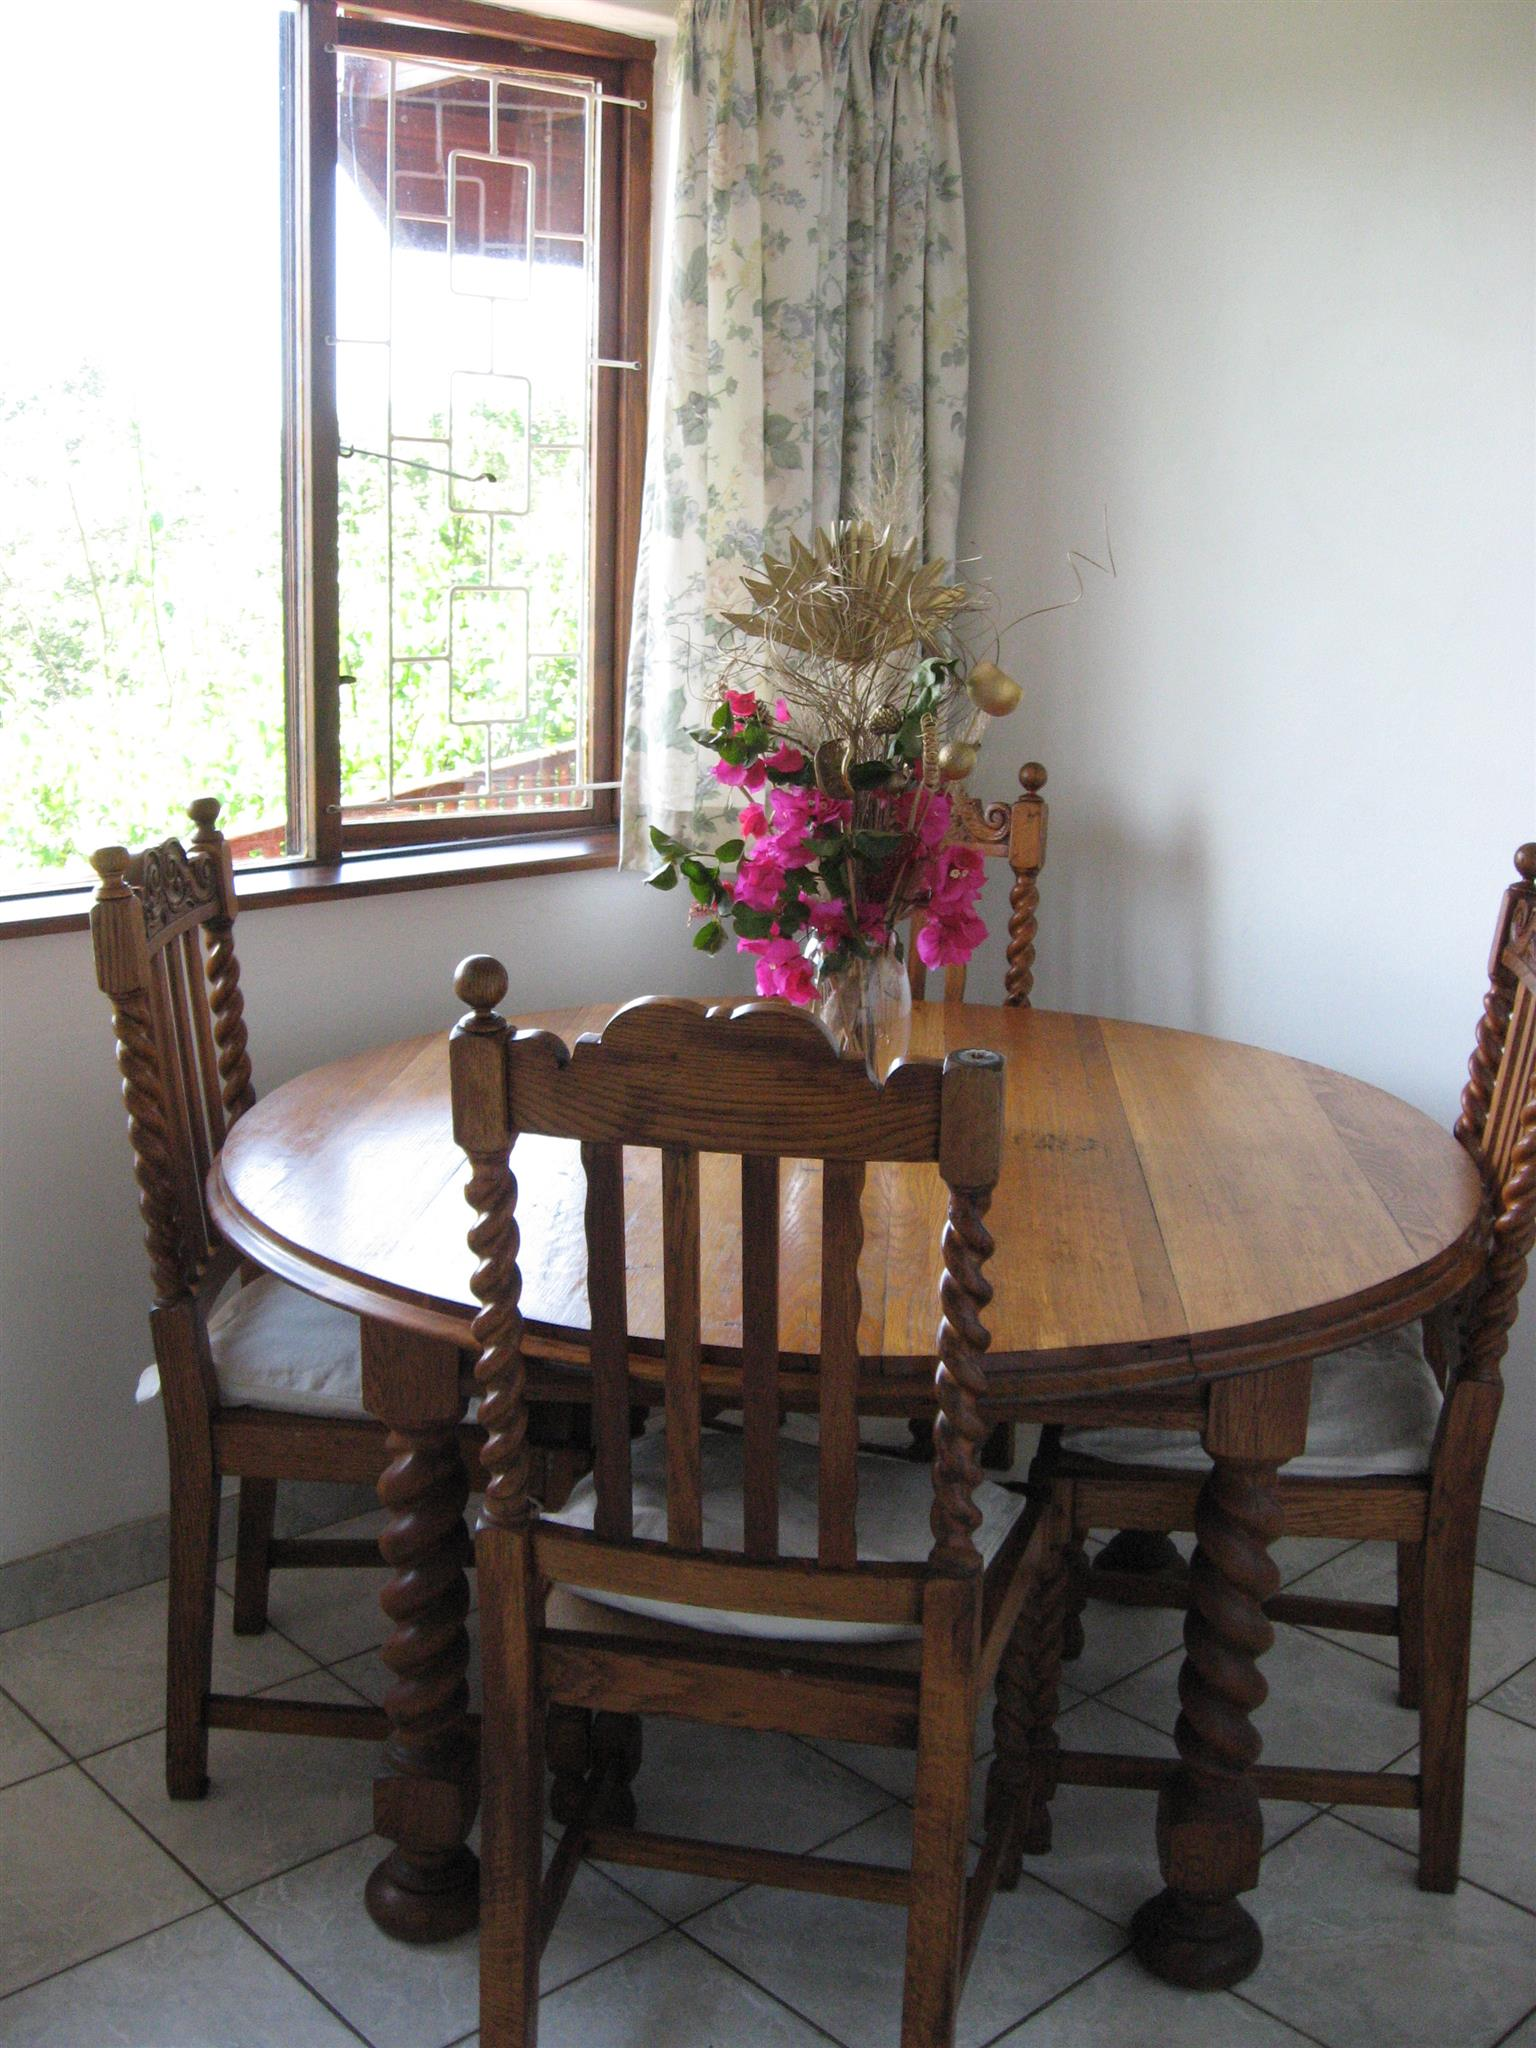 FURNISHED BACHELOR VILLA WITH STUNNING SEA AND RIVER VIEWS R4300 INC LAZER SECURITY IMM OCC